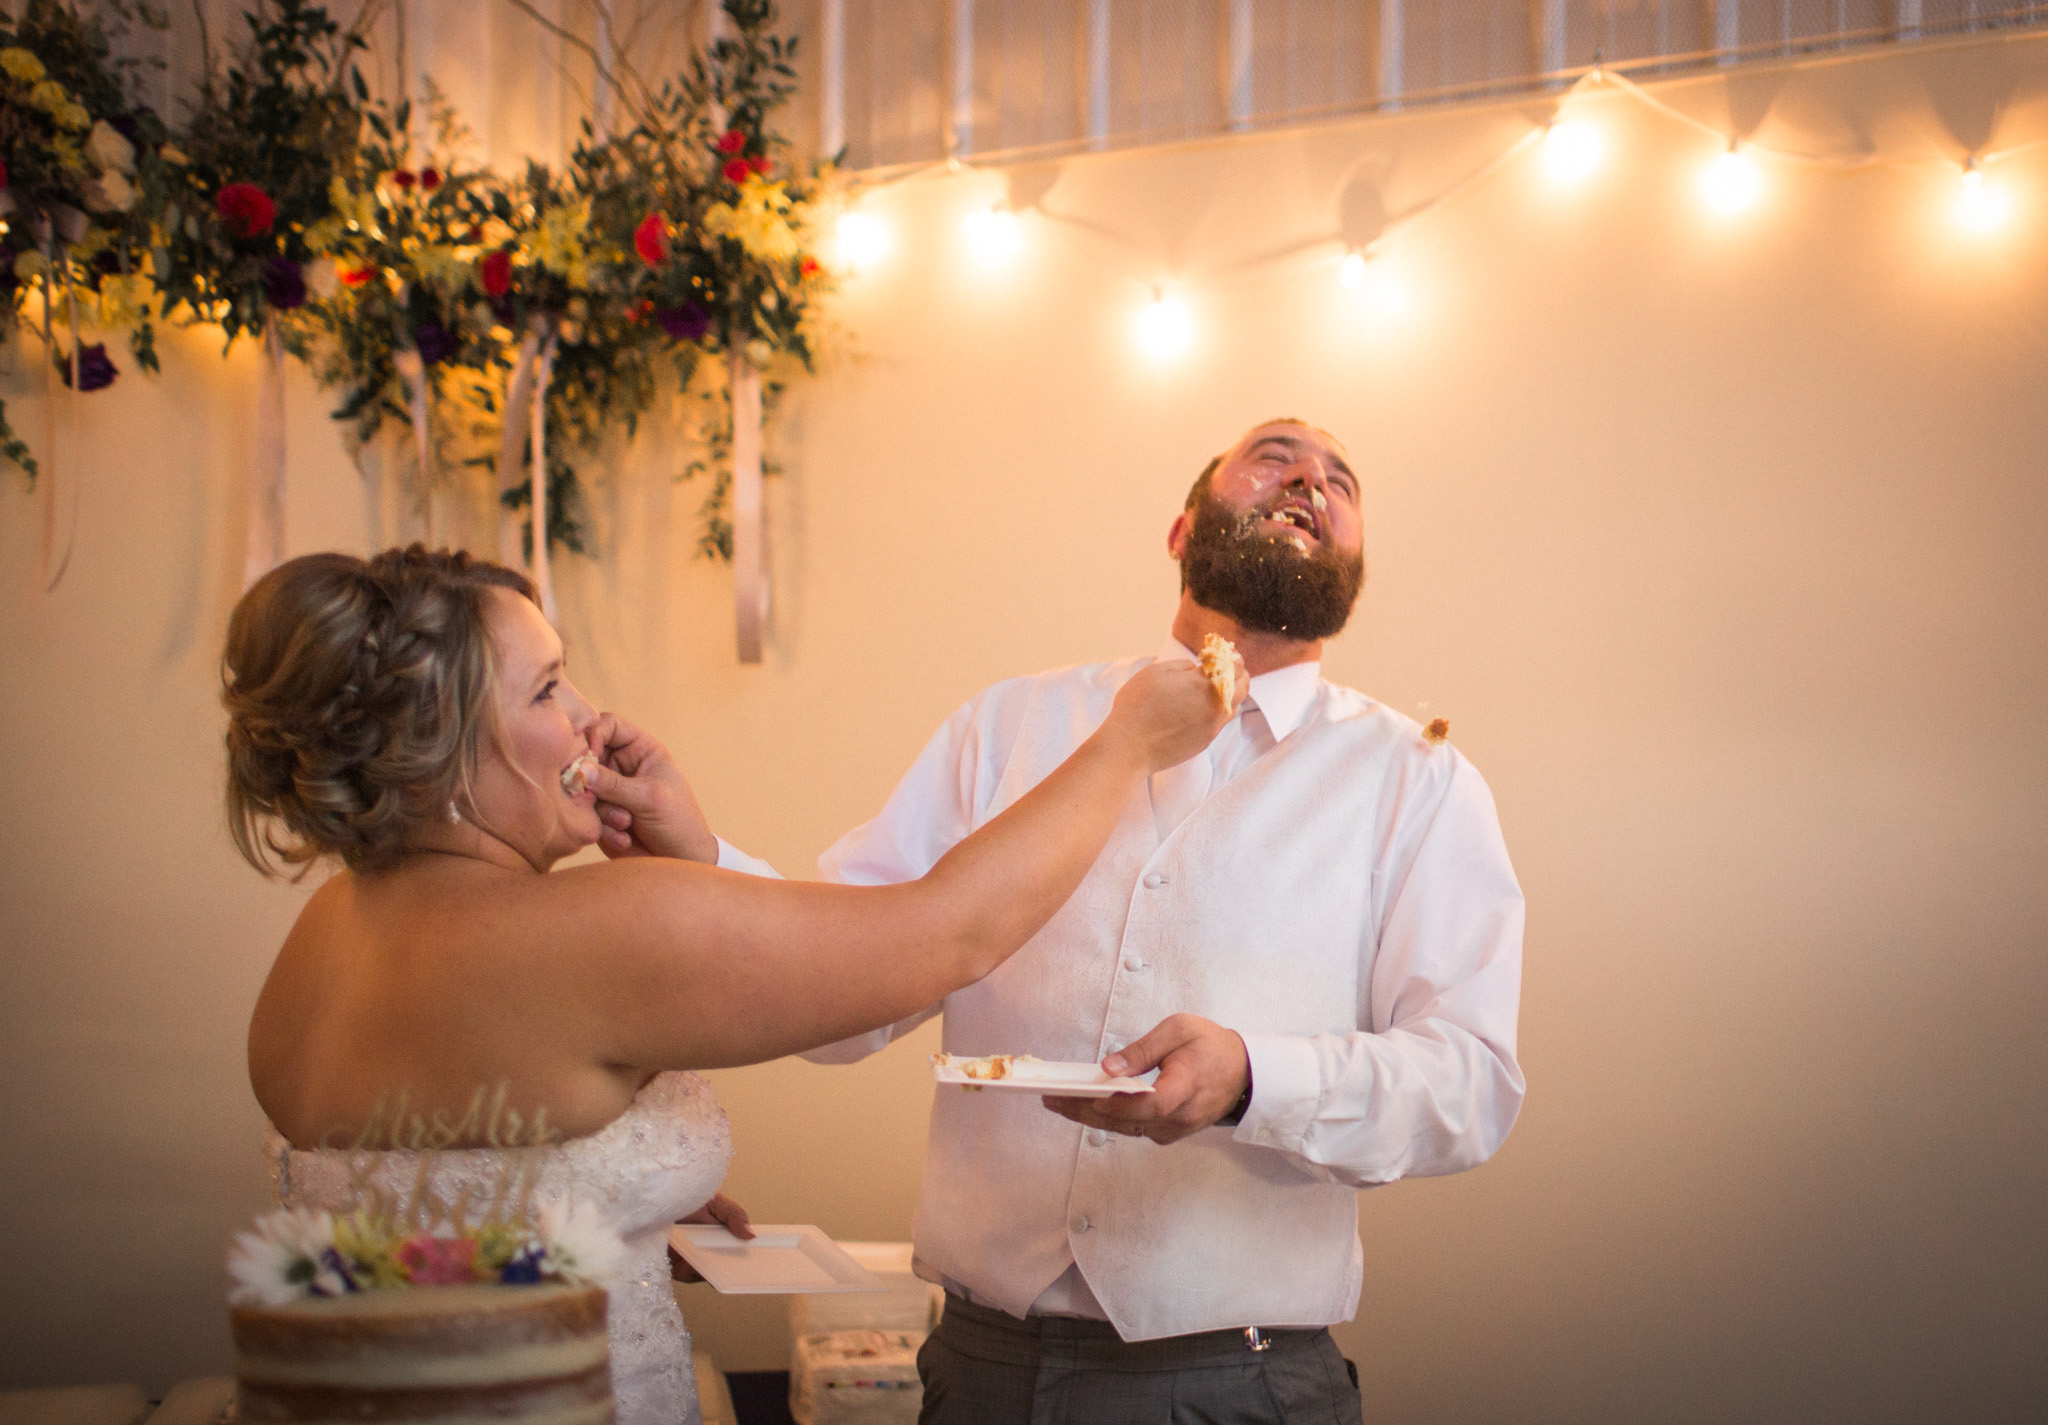 Zibell Spring Wedding, Bride and Groom, Powerful, Connected, Exploration, Laura Duggleby Photography -151.JPG